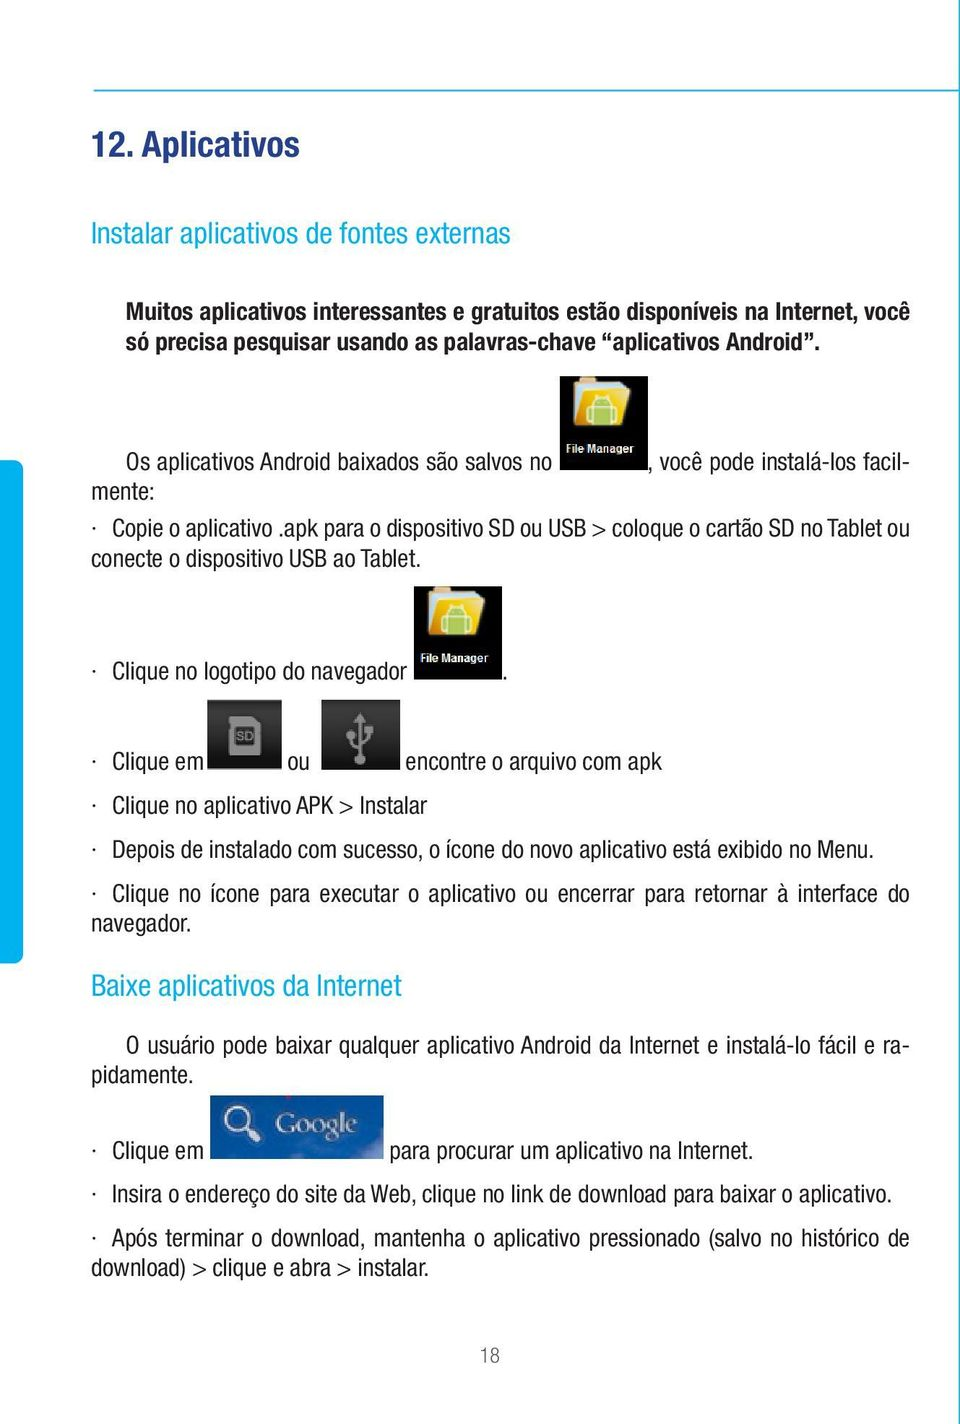 apk para o dispositivo SD ou USB > coloque o cartão SD no Tablet ou conecte o dispositivo USB ao Tablet. Clique no logotipo do navegador.